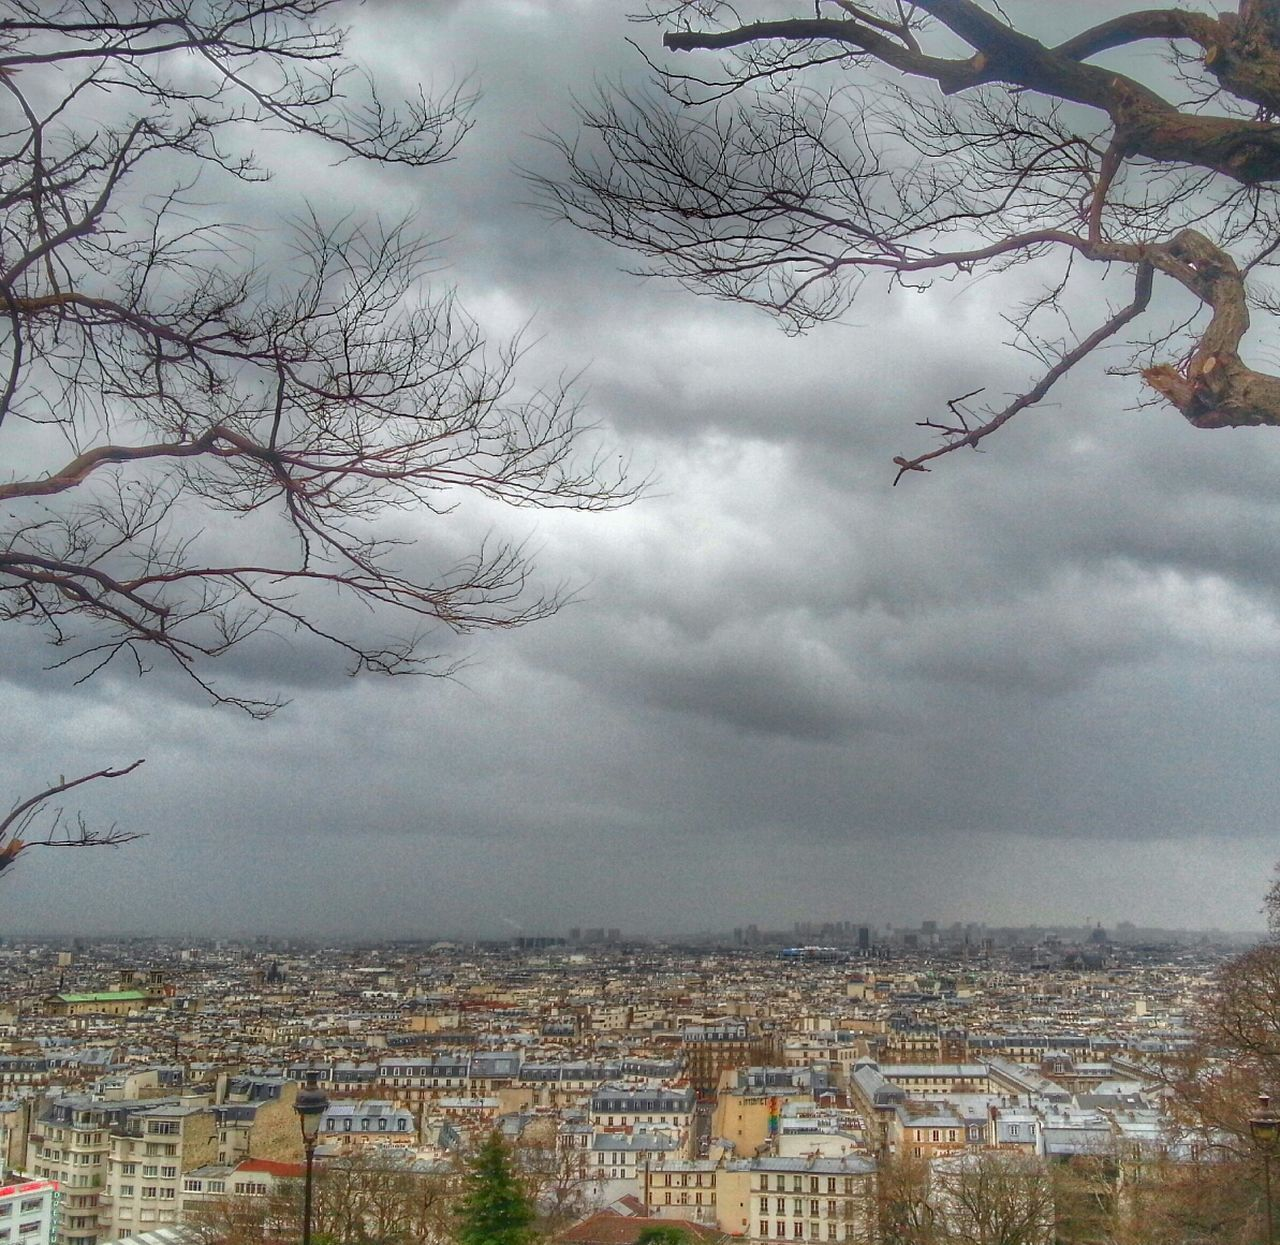 Cityscape against clouds with bare branches in foreground